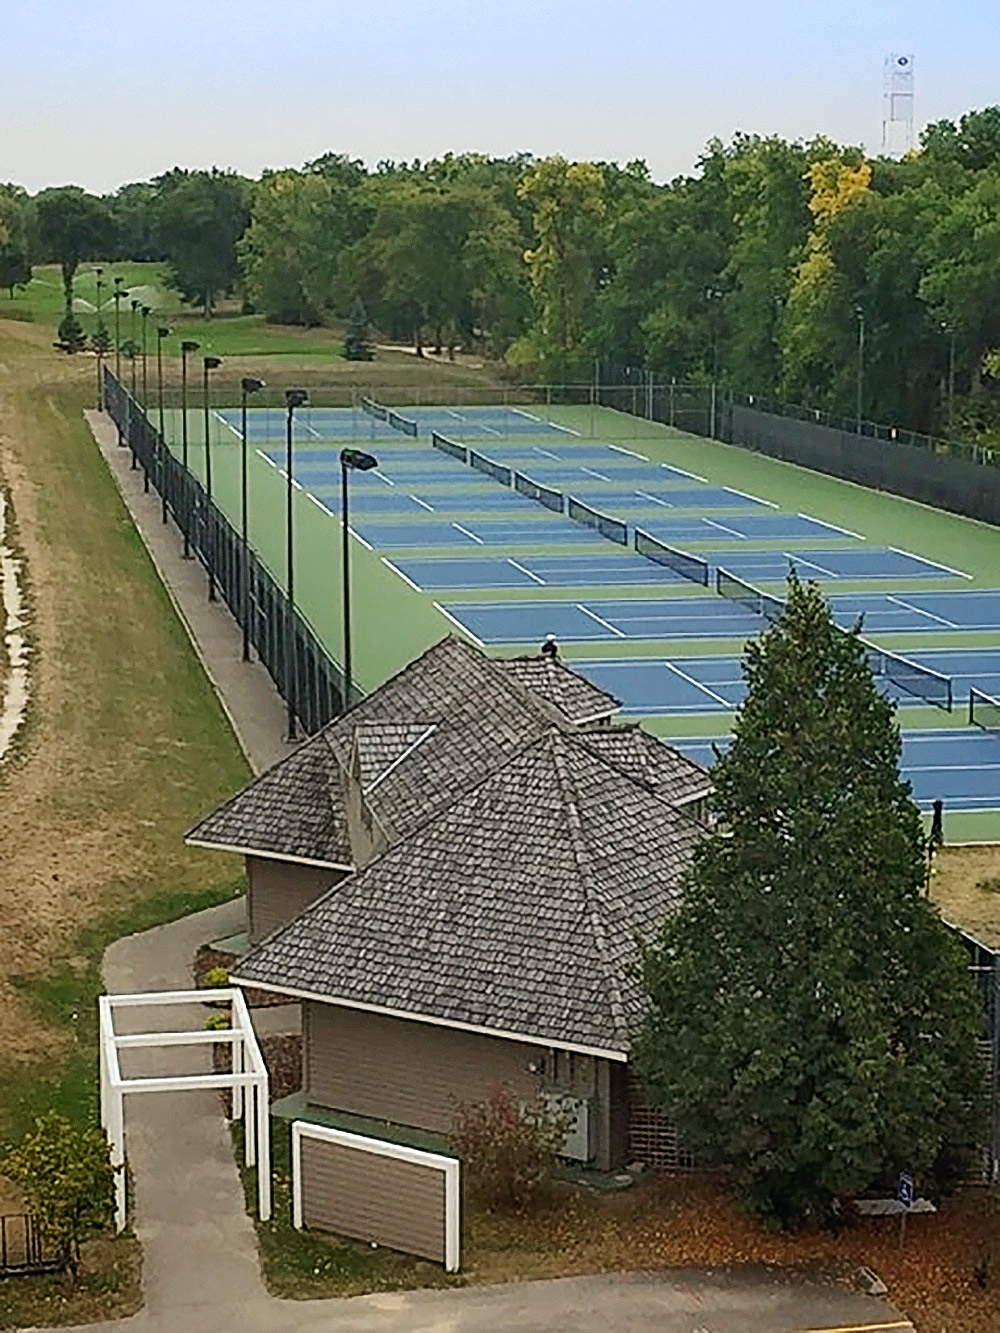 Winnipeg Lawn Tennis Club - 11 newly resurfaced Plexipave hard courts set on the banks of the Red River in beautiful Wildwood. Open to players of all skill levels.